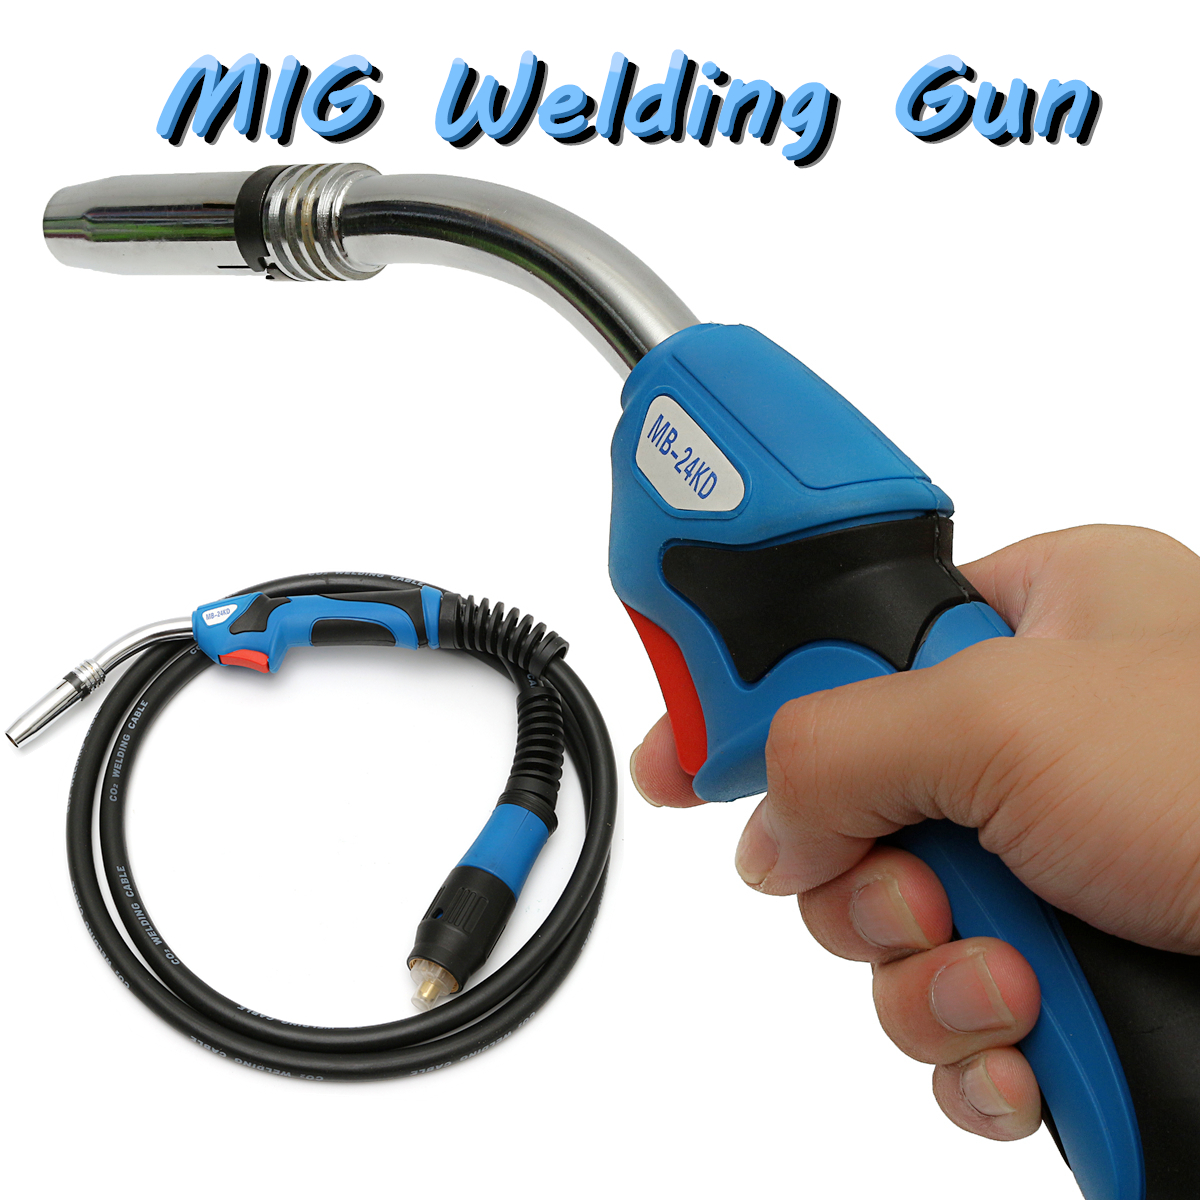 250A MB24 Welding Torch Gun 3M Air Cooled Euro Quick Connector for MIG MAG Welding Machine